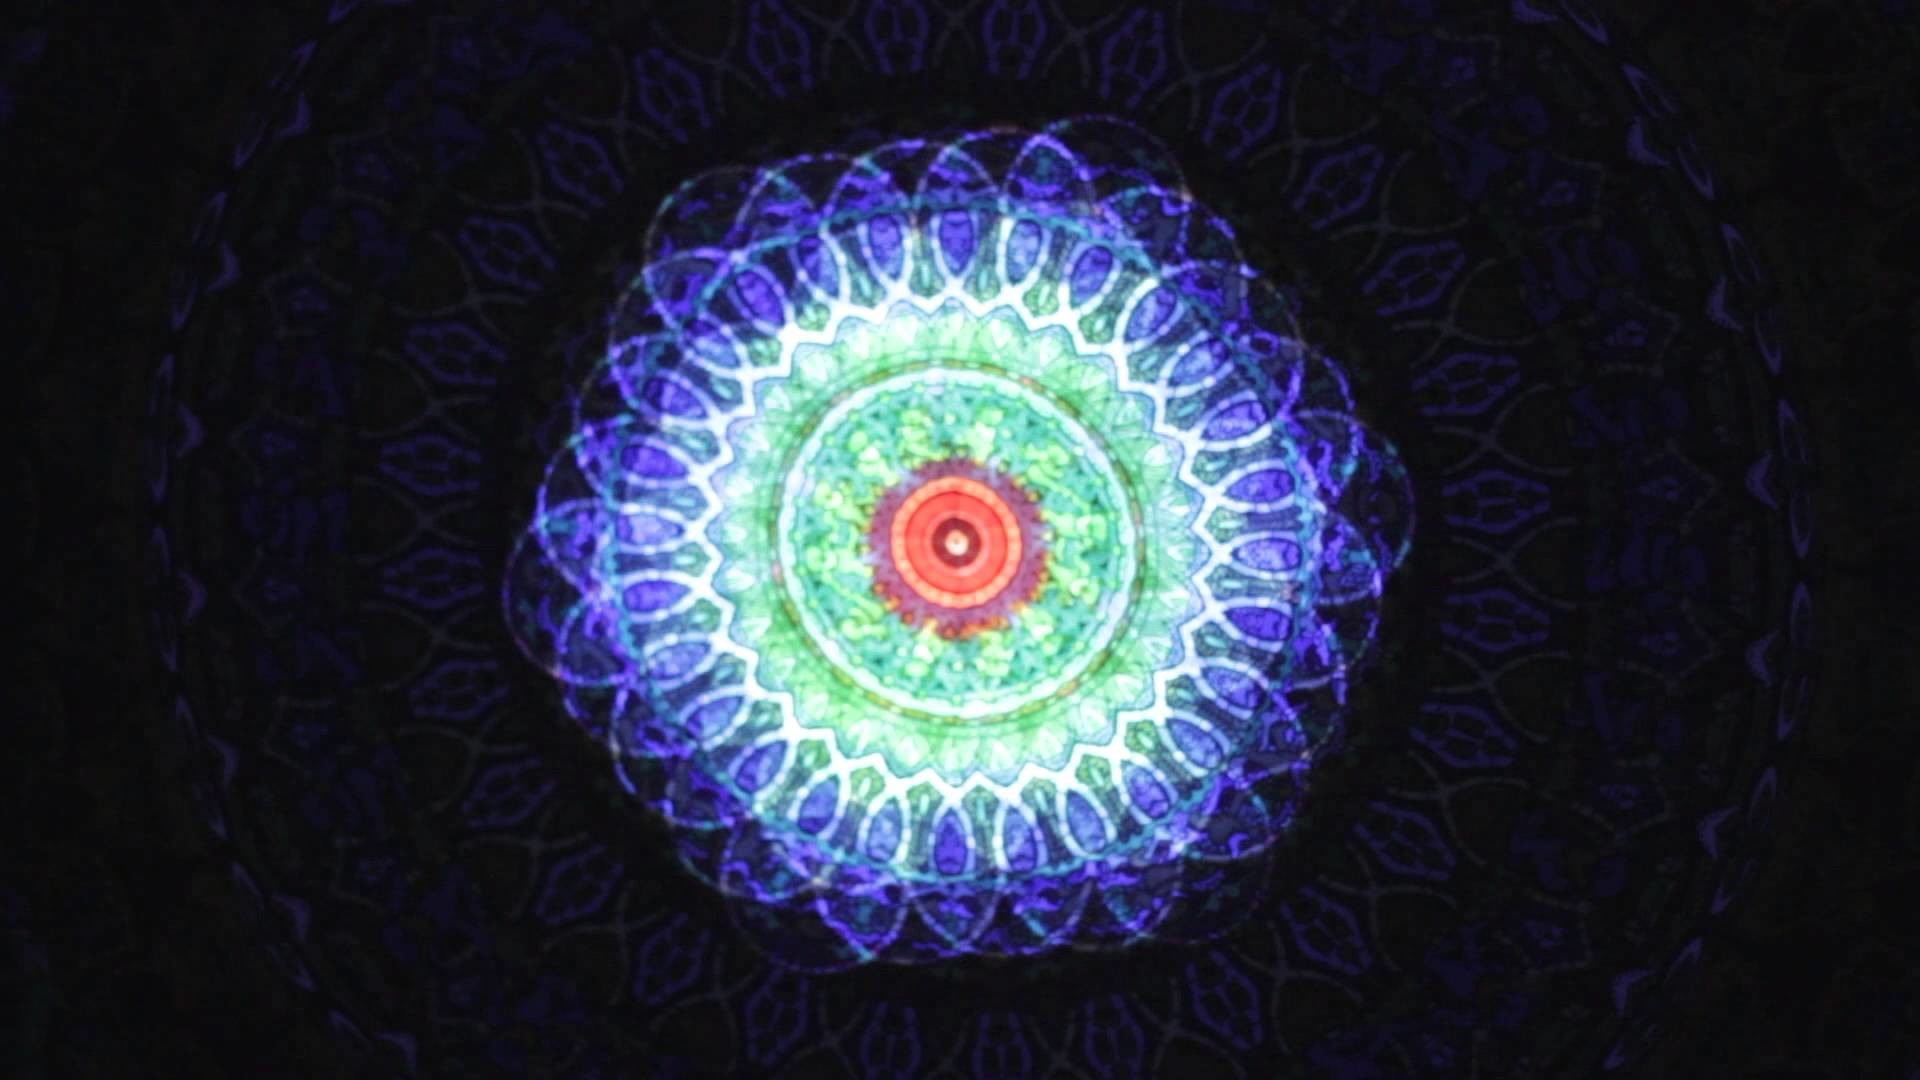 Flower of Life Projection on Tapestry